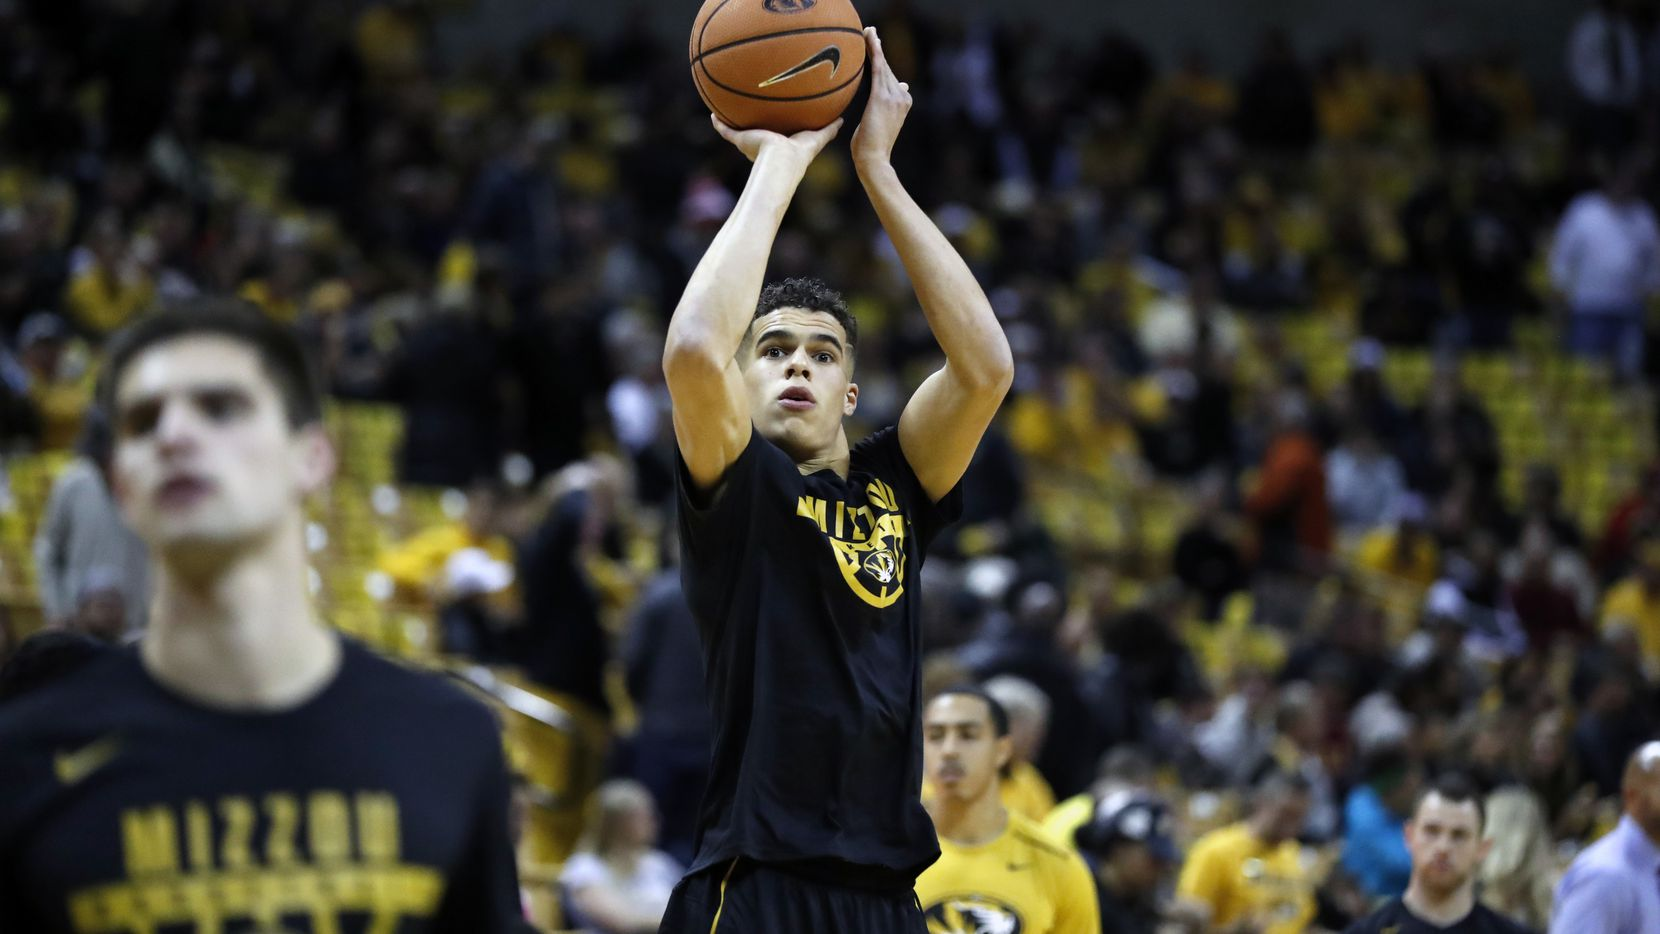 FILE - Missouri's Michael Porter Jr. warms up before the start of an NCAA college basketball game between Missouri and Iowa State Friday, Nov. 10, 2017, in Columbia, Mo. (AP Photo/Jeff Roberson)